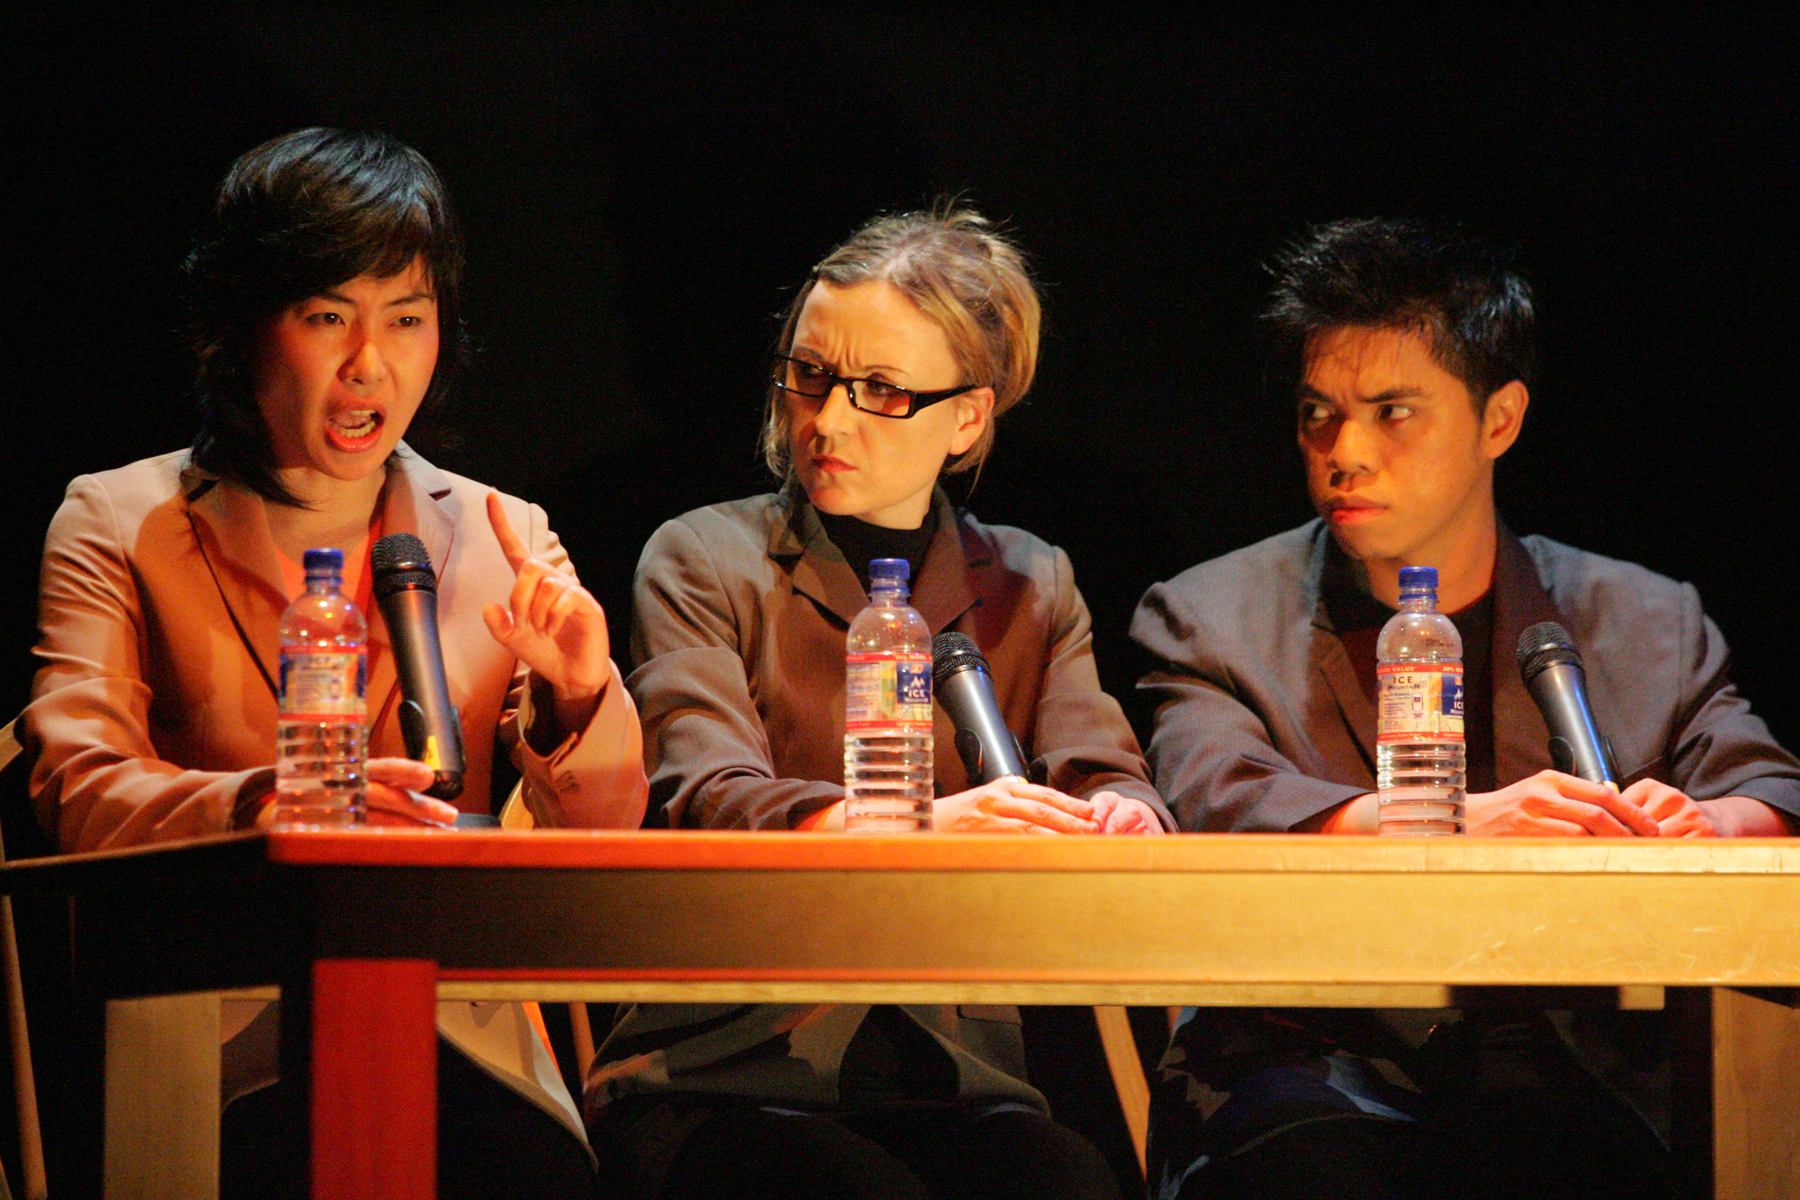 Left to Right: Hyeok Kim, Heidi Love, and Seng Soo Ming in  Attempts on her life,  Scenario 11.2007. Esplanade Studio, Theatres on the Bay Singapore, 2004..